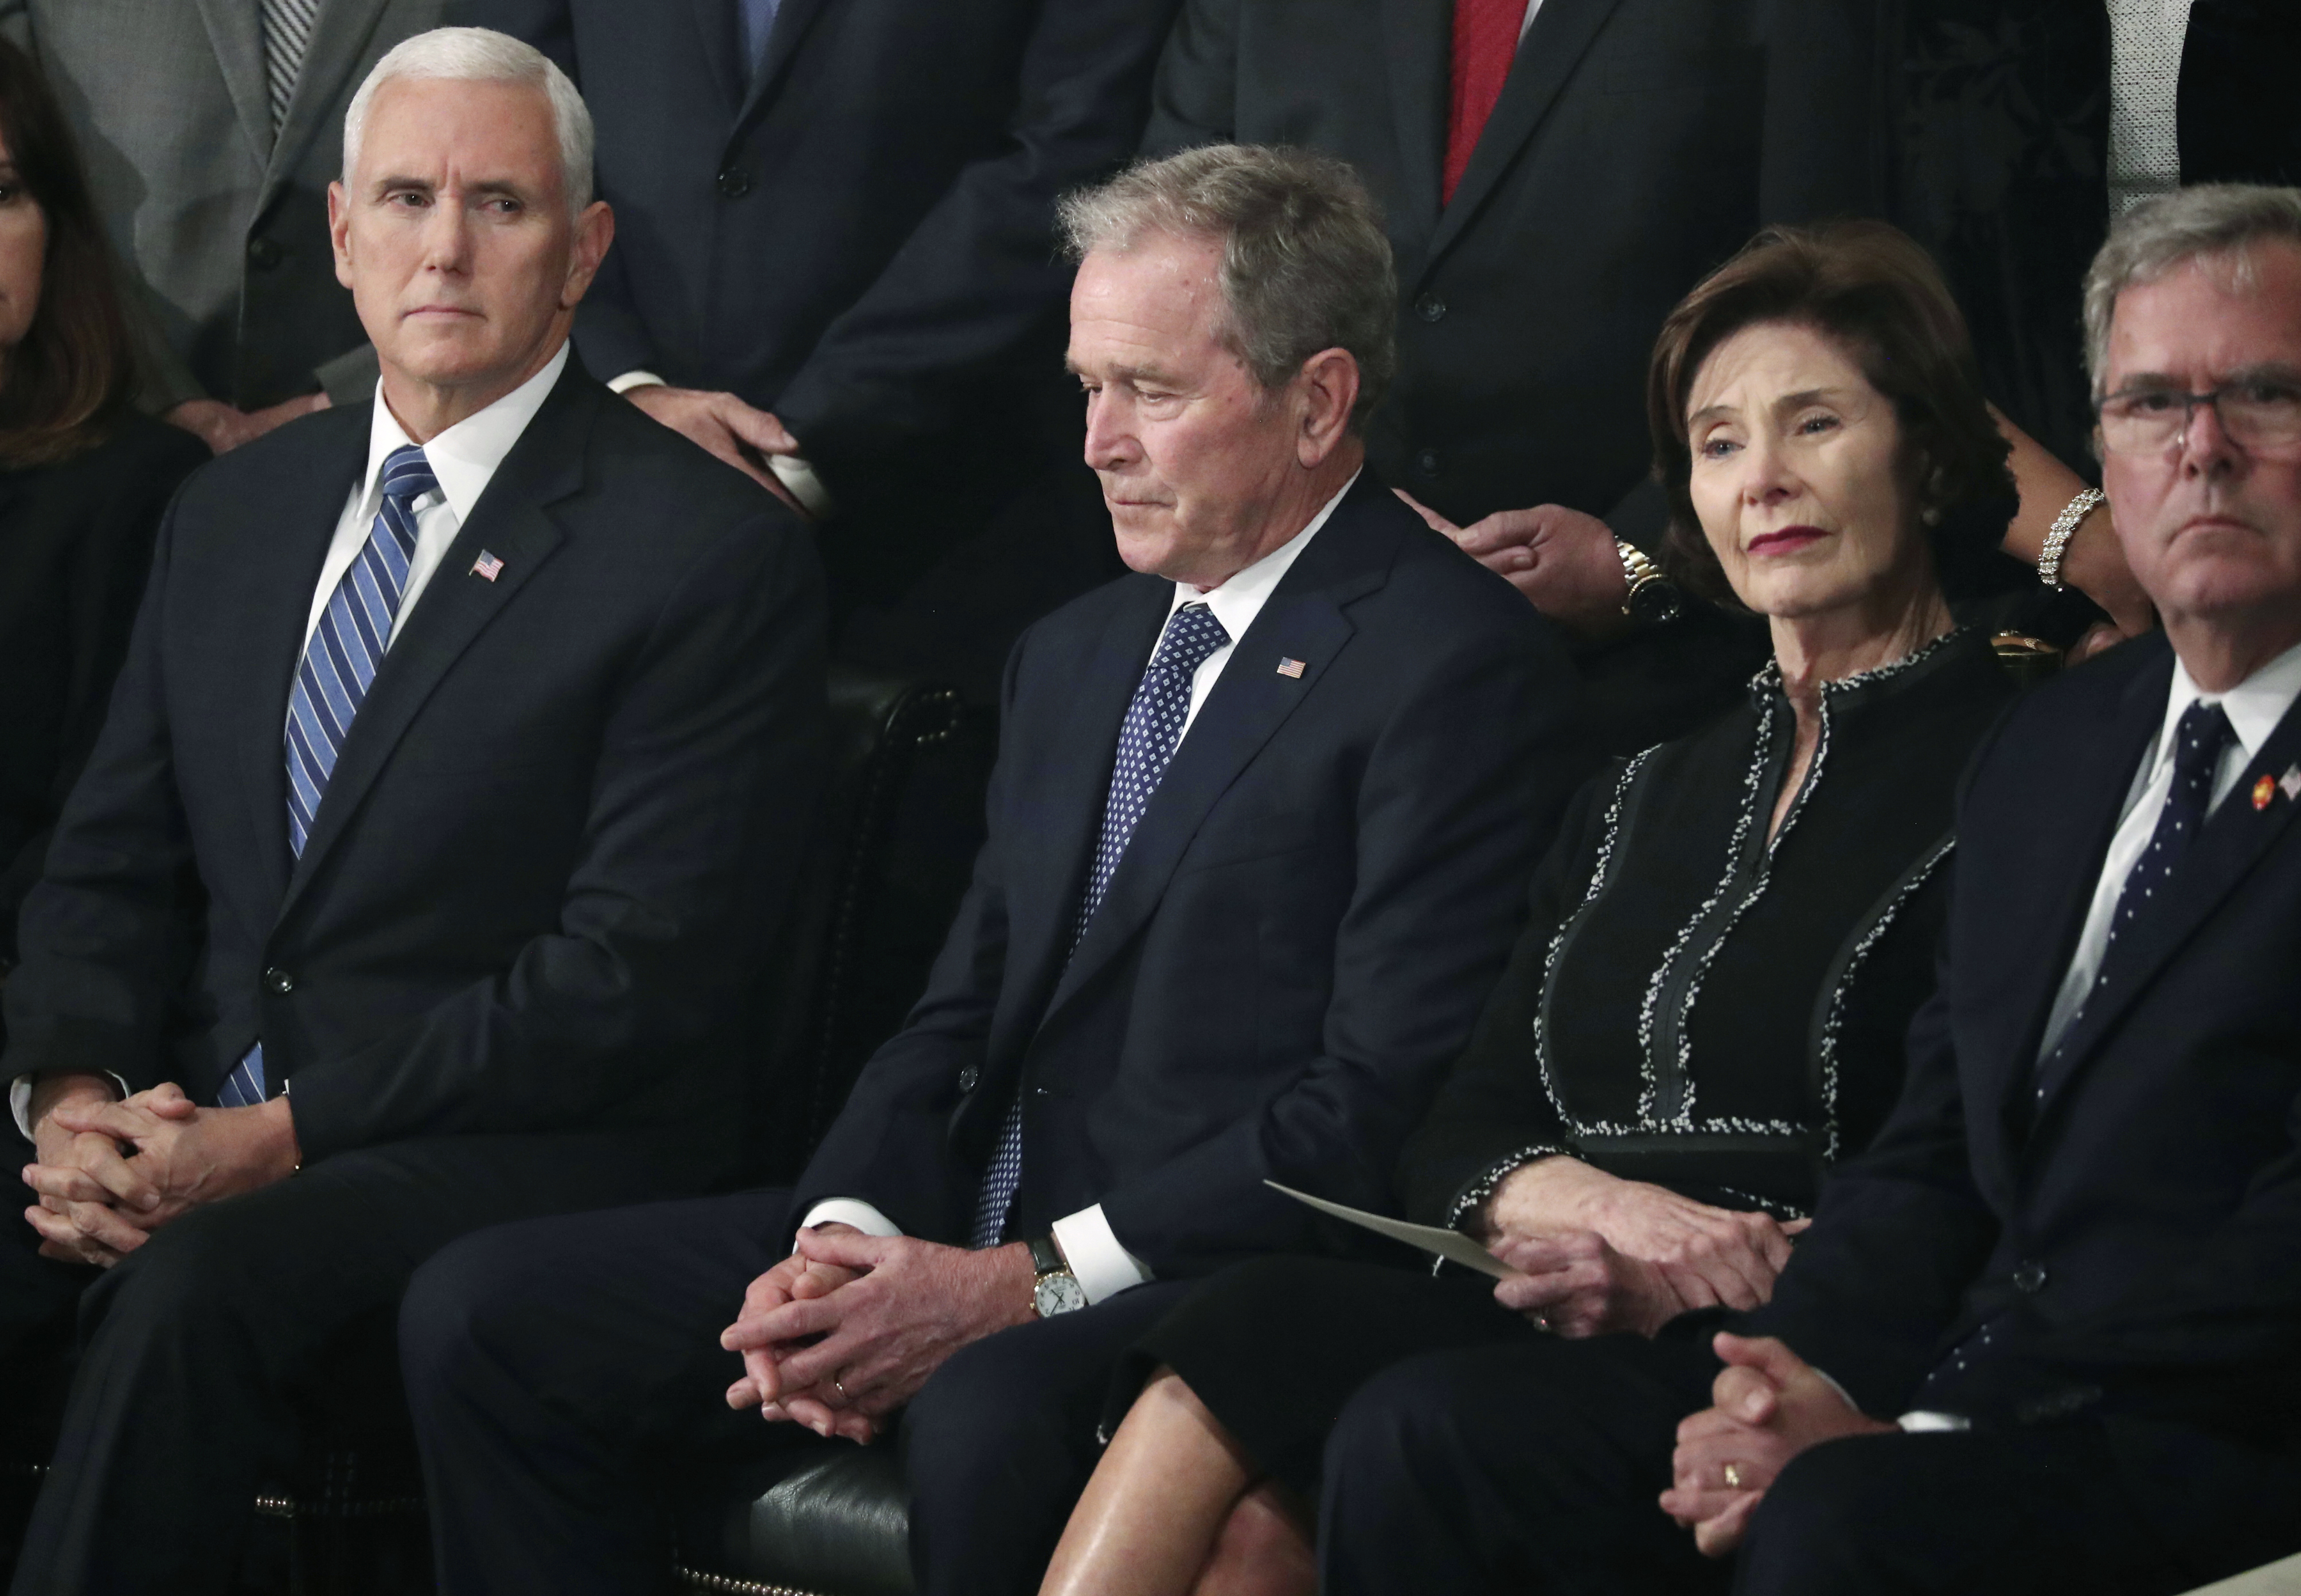 Former President George W. Bush, second from left, former first lady Laura Bush, former Florida Gov. Jeb Bush, right, and Vice President Mike Pence, left, attend a service for former President George H.W. Bush as his body lies in state in the Capitol Rotunda, Monday, Dec. 3, 2018 in Washington. (Jonathan Ernst/Pool via AP)